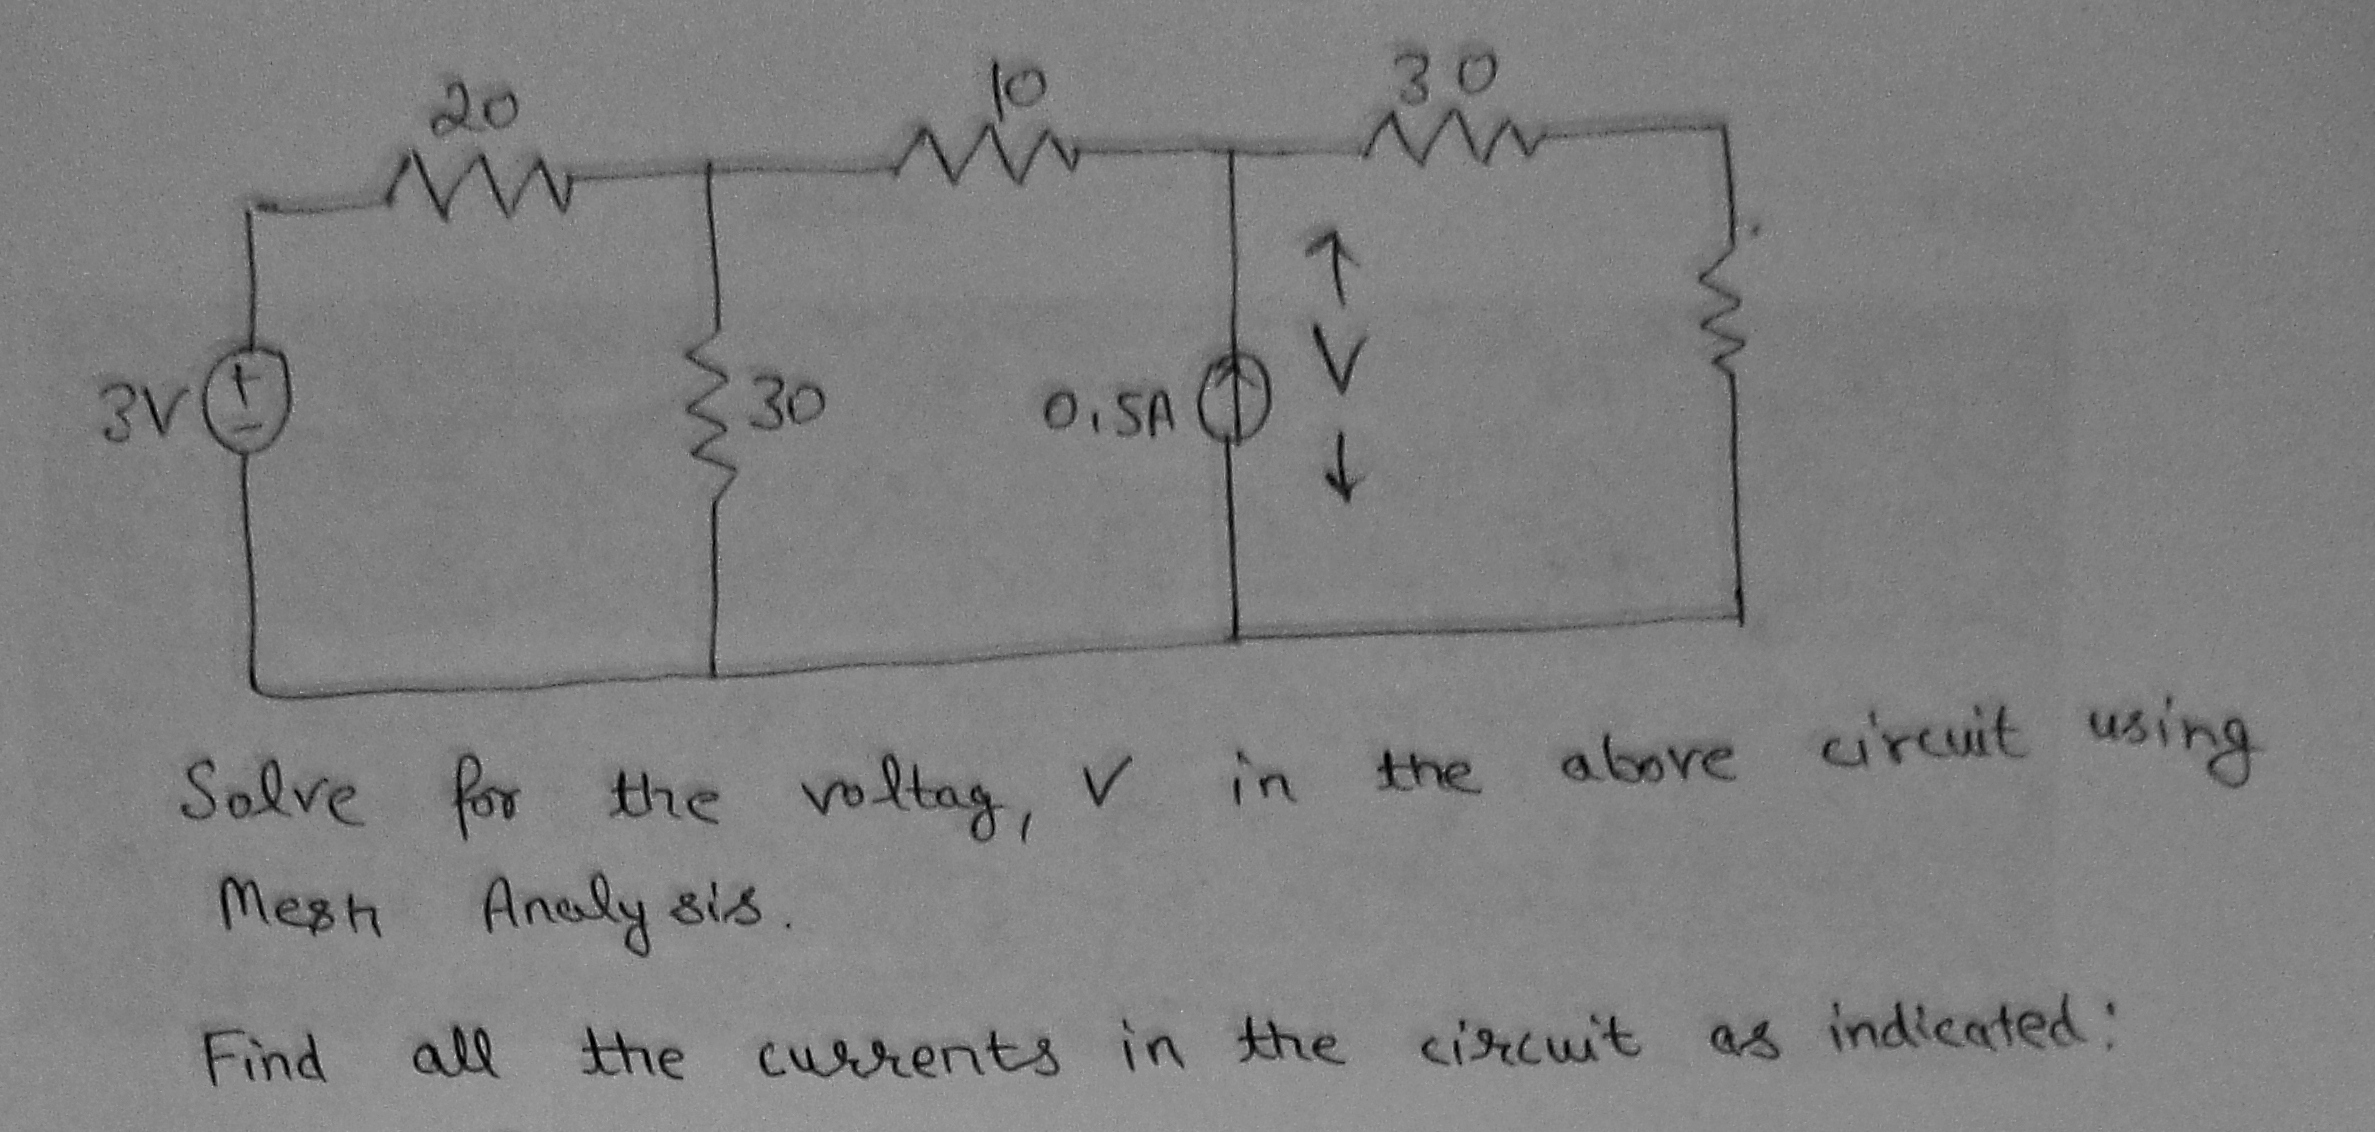 Solve for the voltage, V in the above circuit us